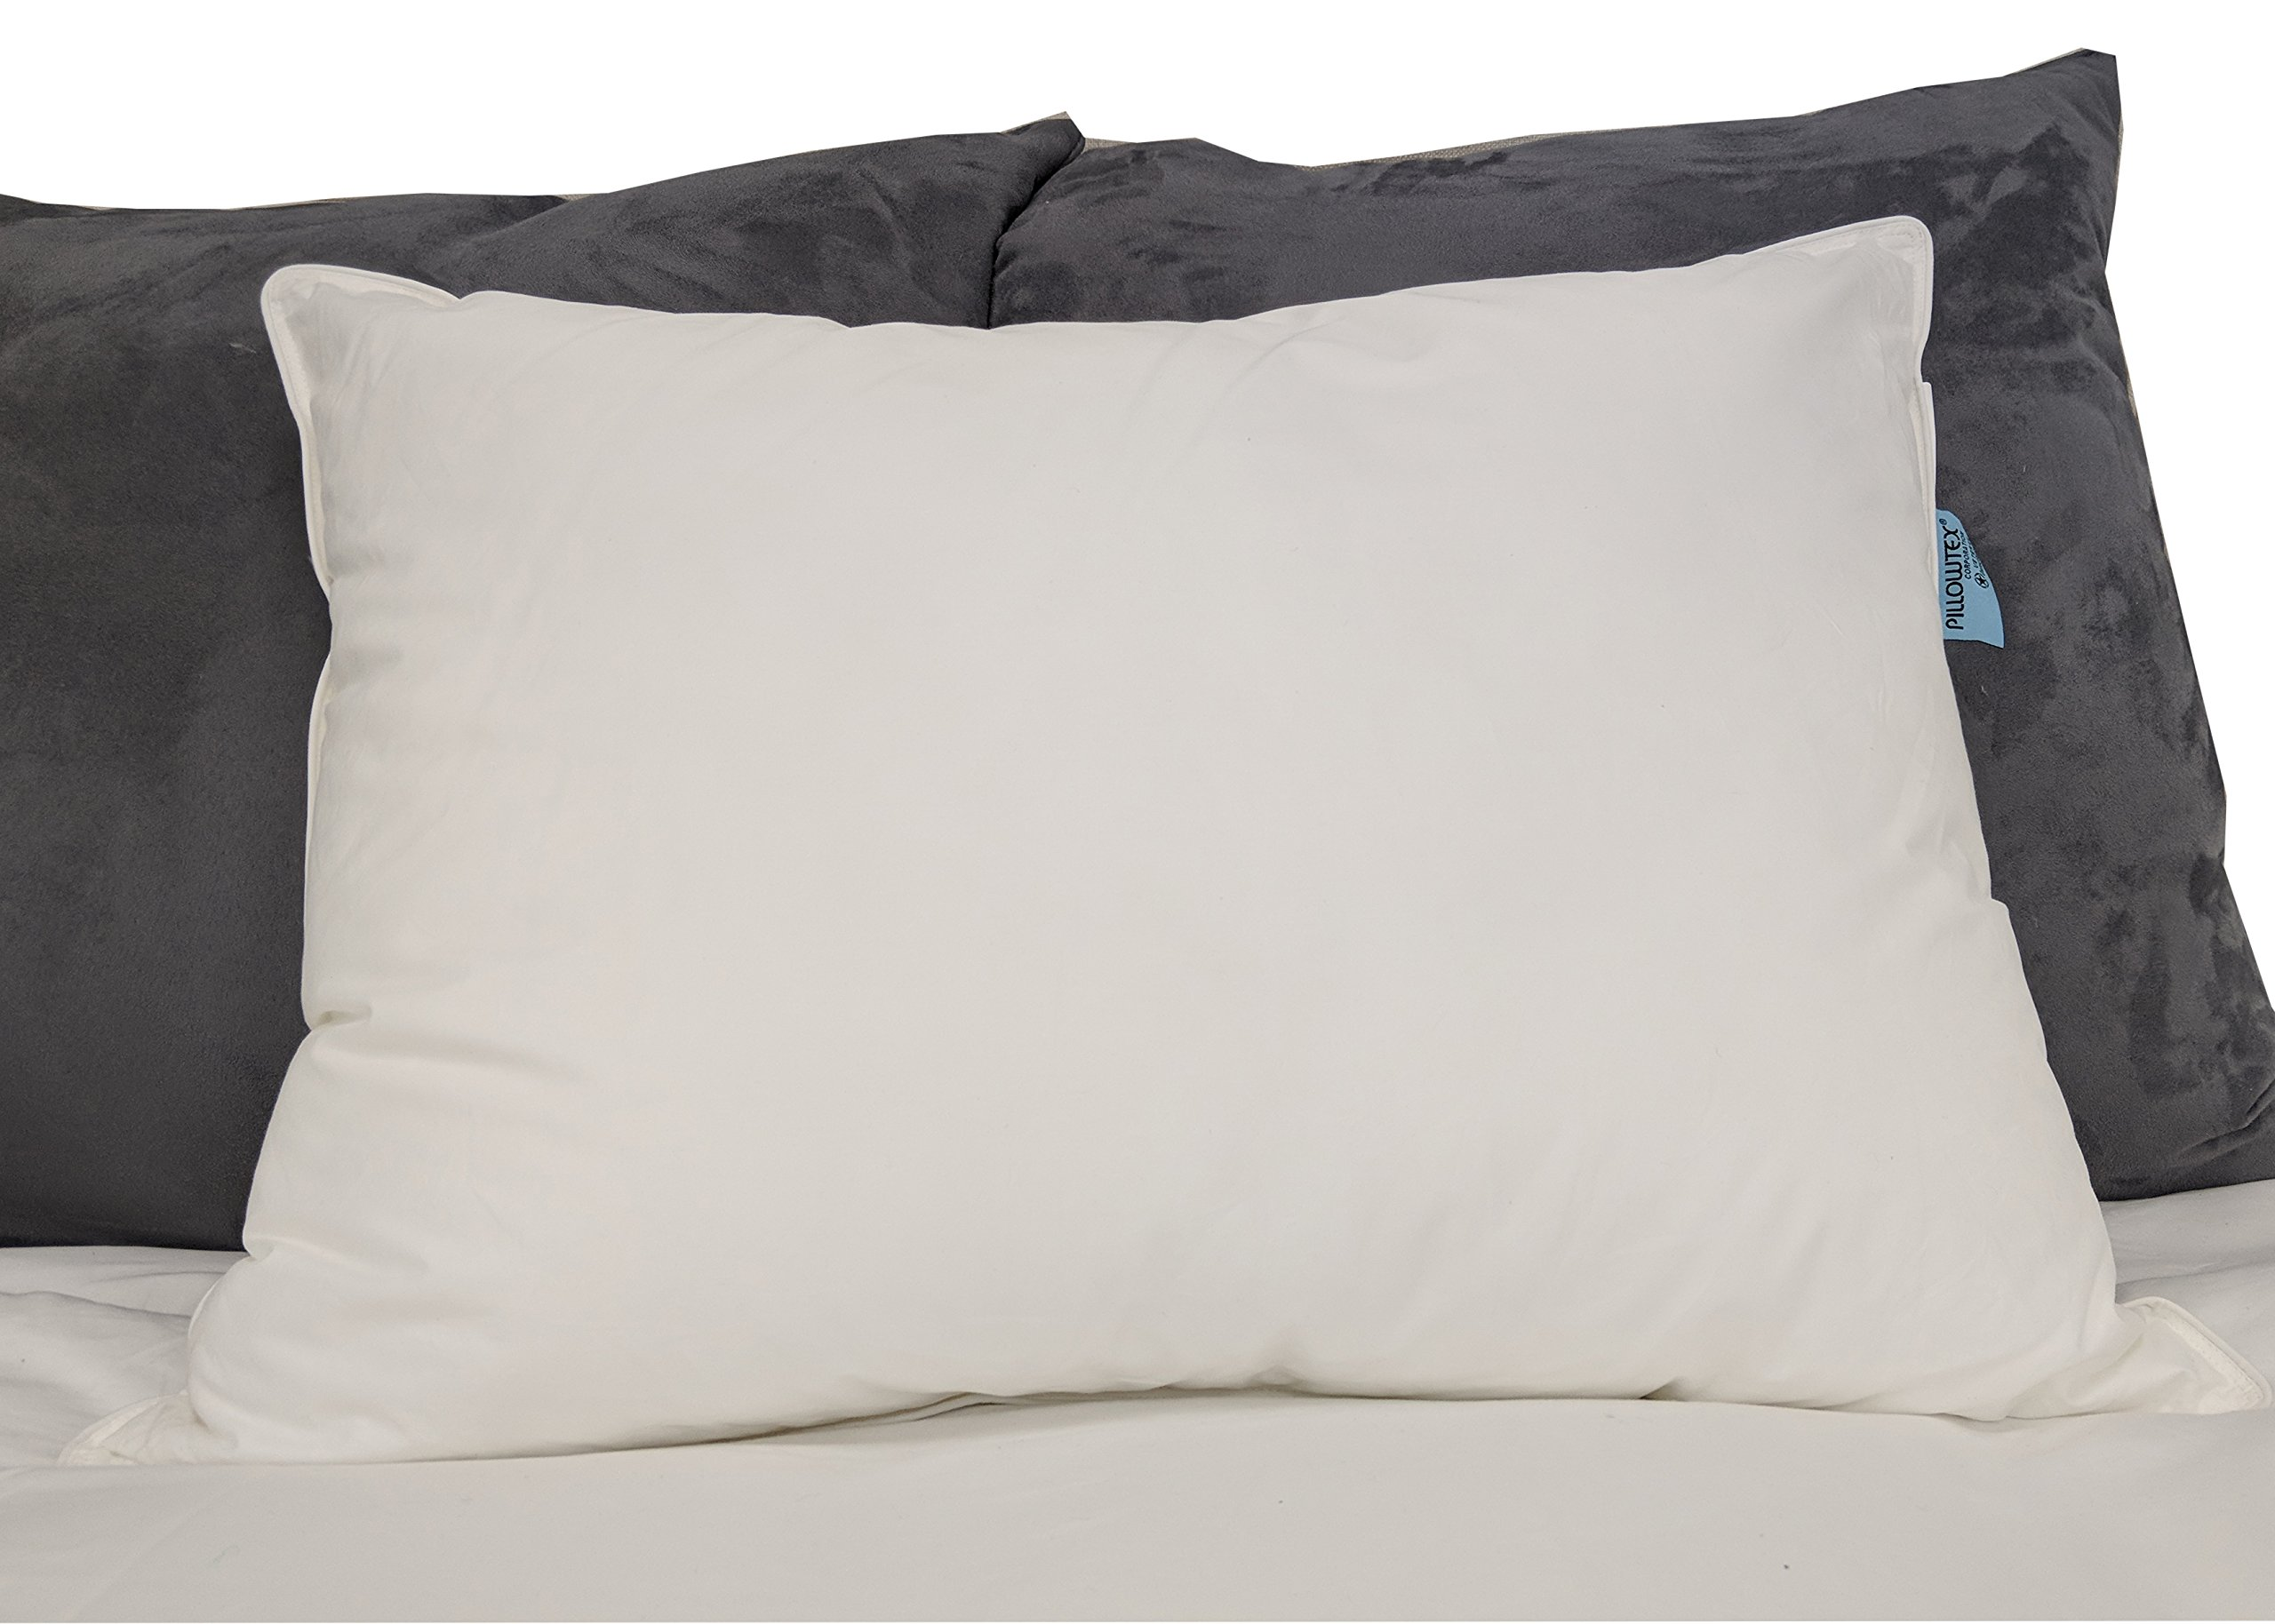 Pillows Similar to Choice Hotels (Standard (20''x26''), Soft) by Pillowtex (Image #3)